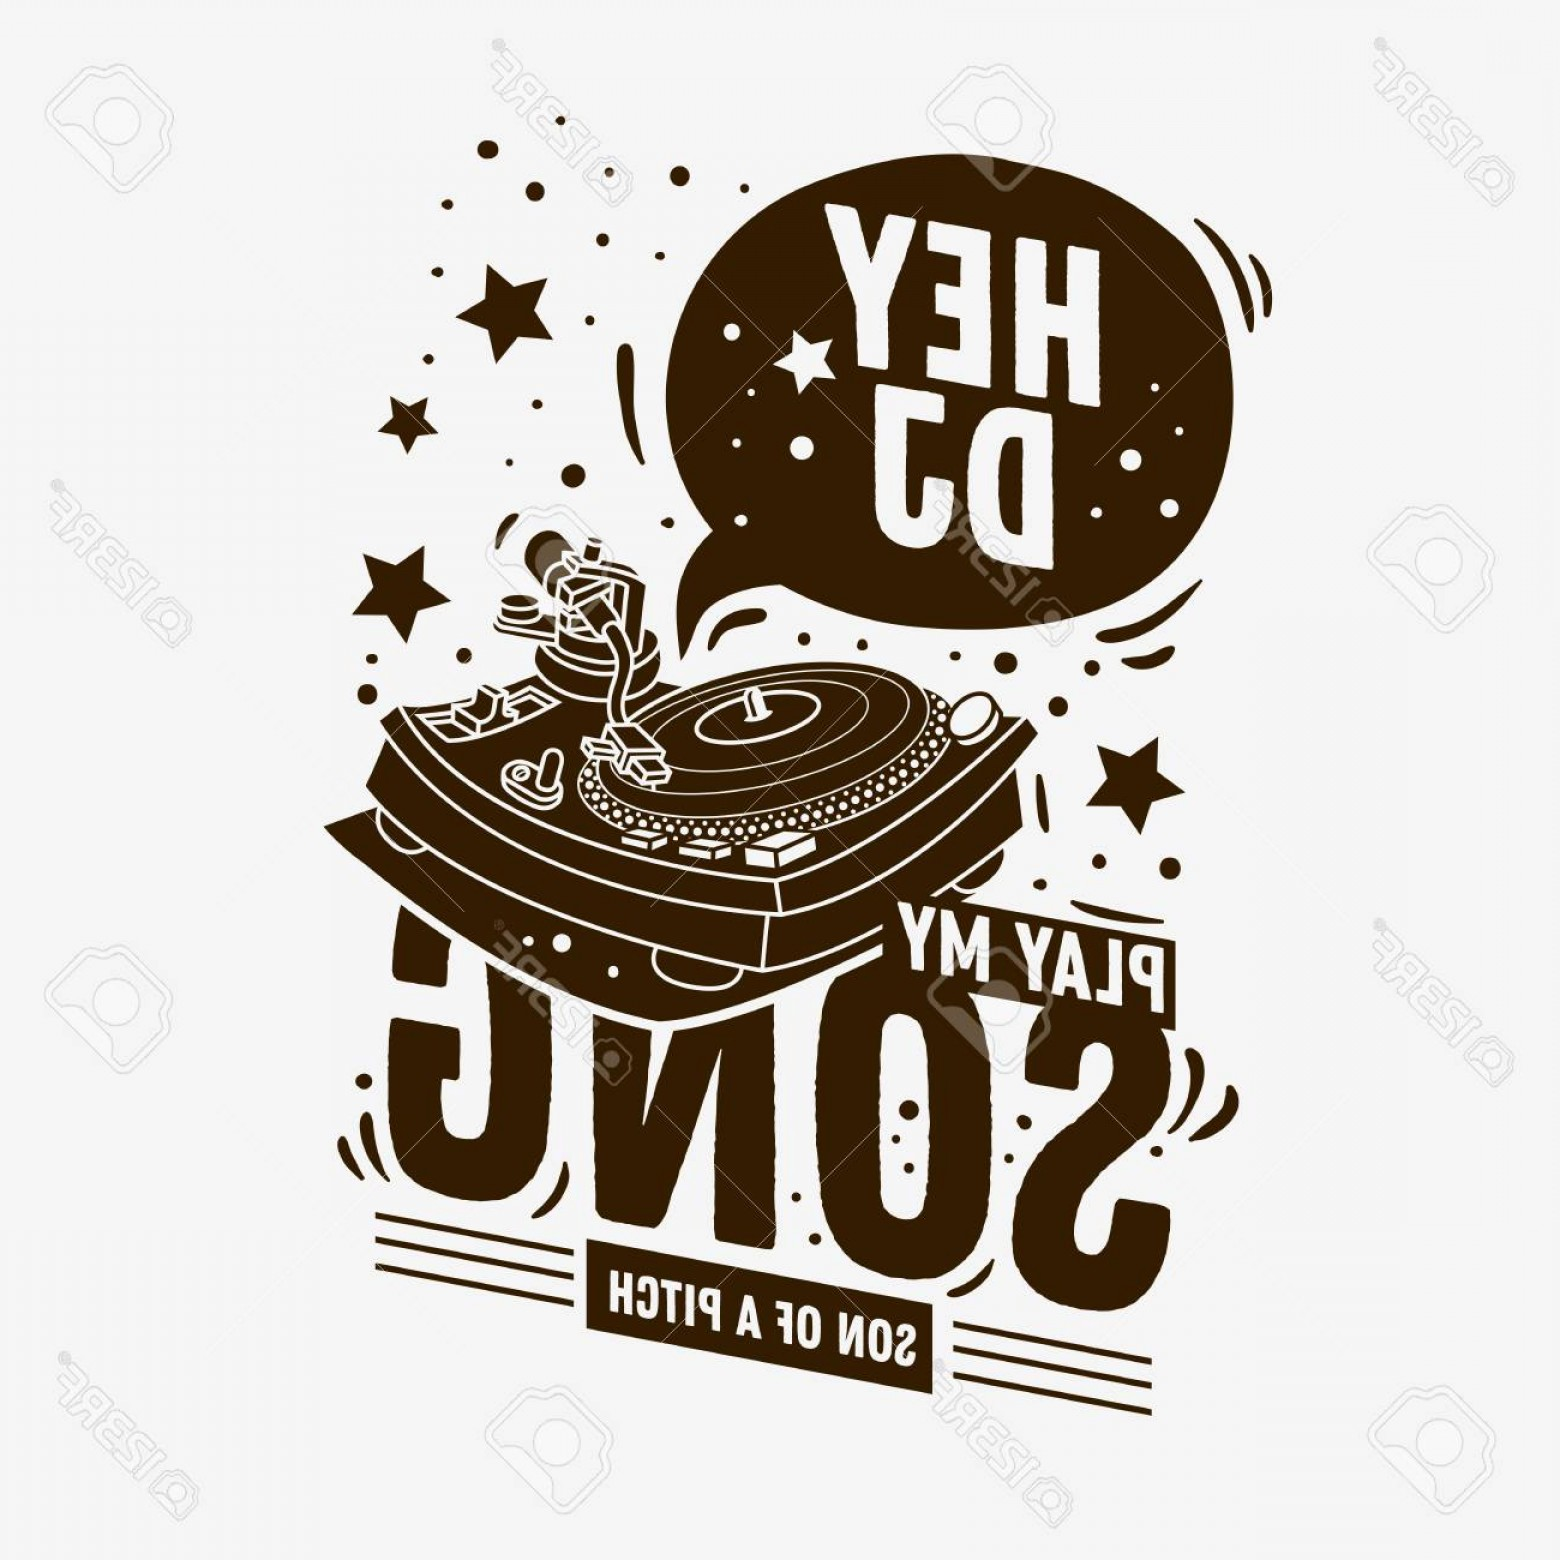 Vector DjDecks: Photostock Vector Dj Themed Typographic Tee Print Design With A Turntable Illustration On A White Background